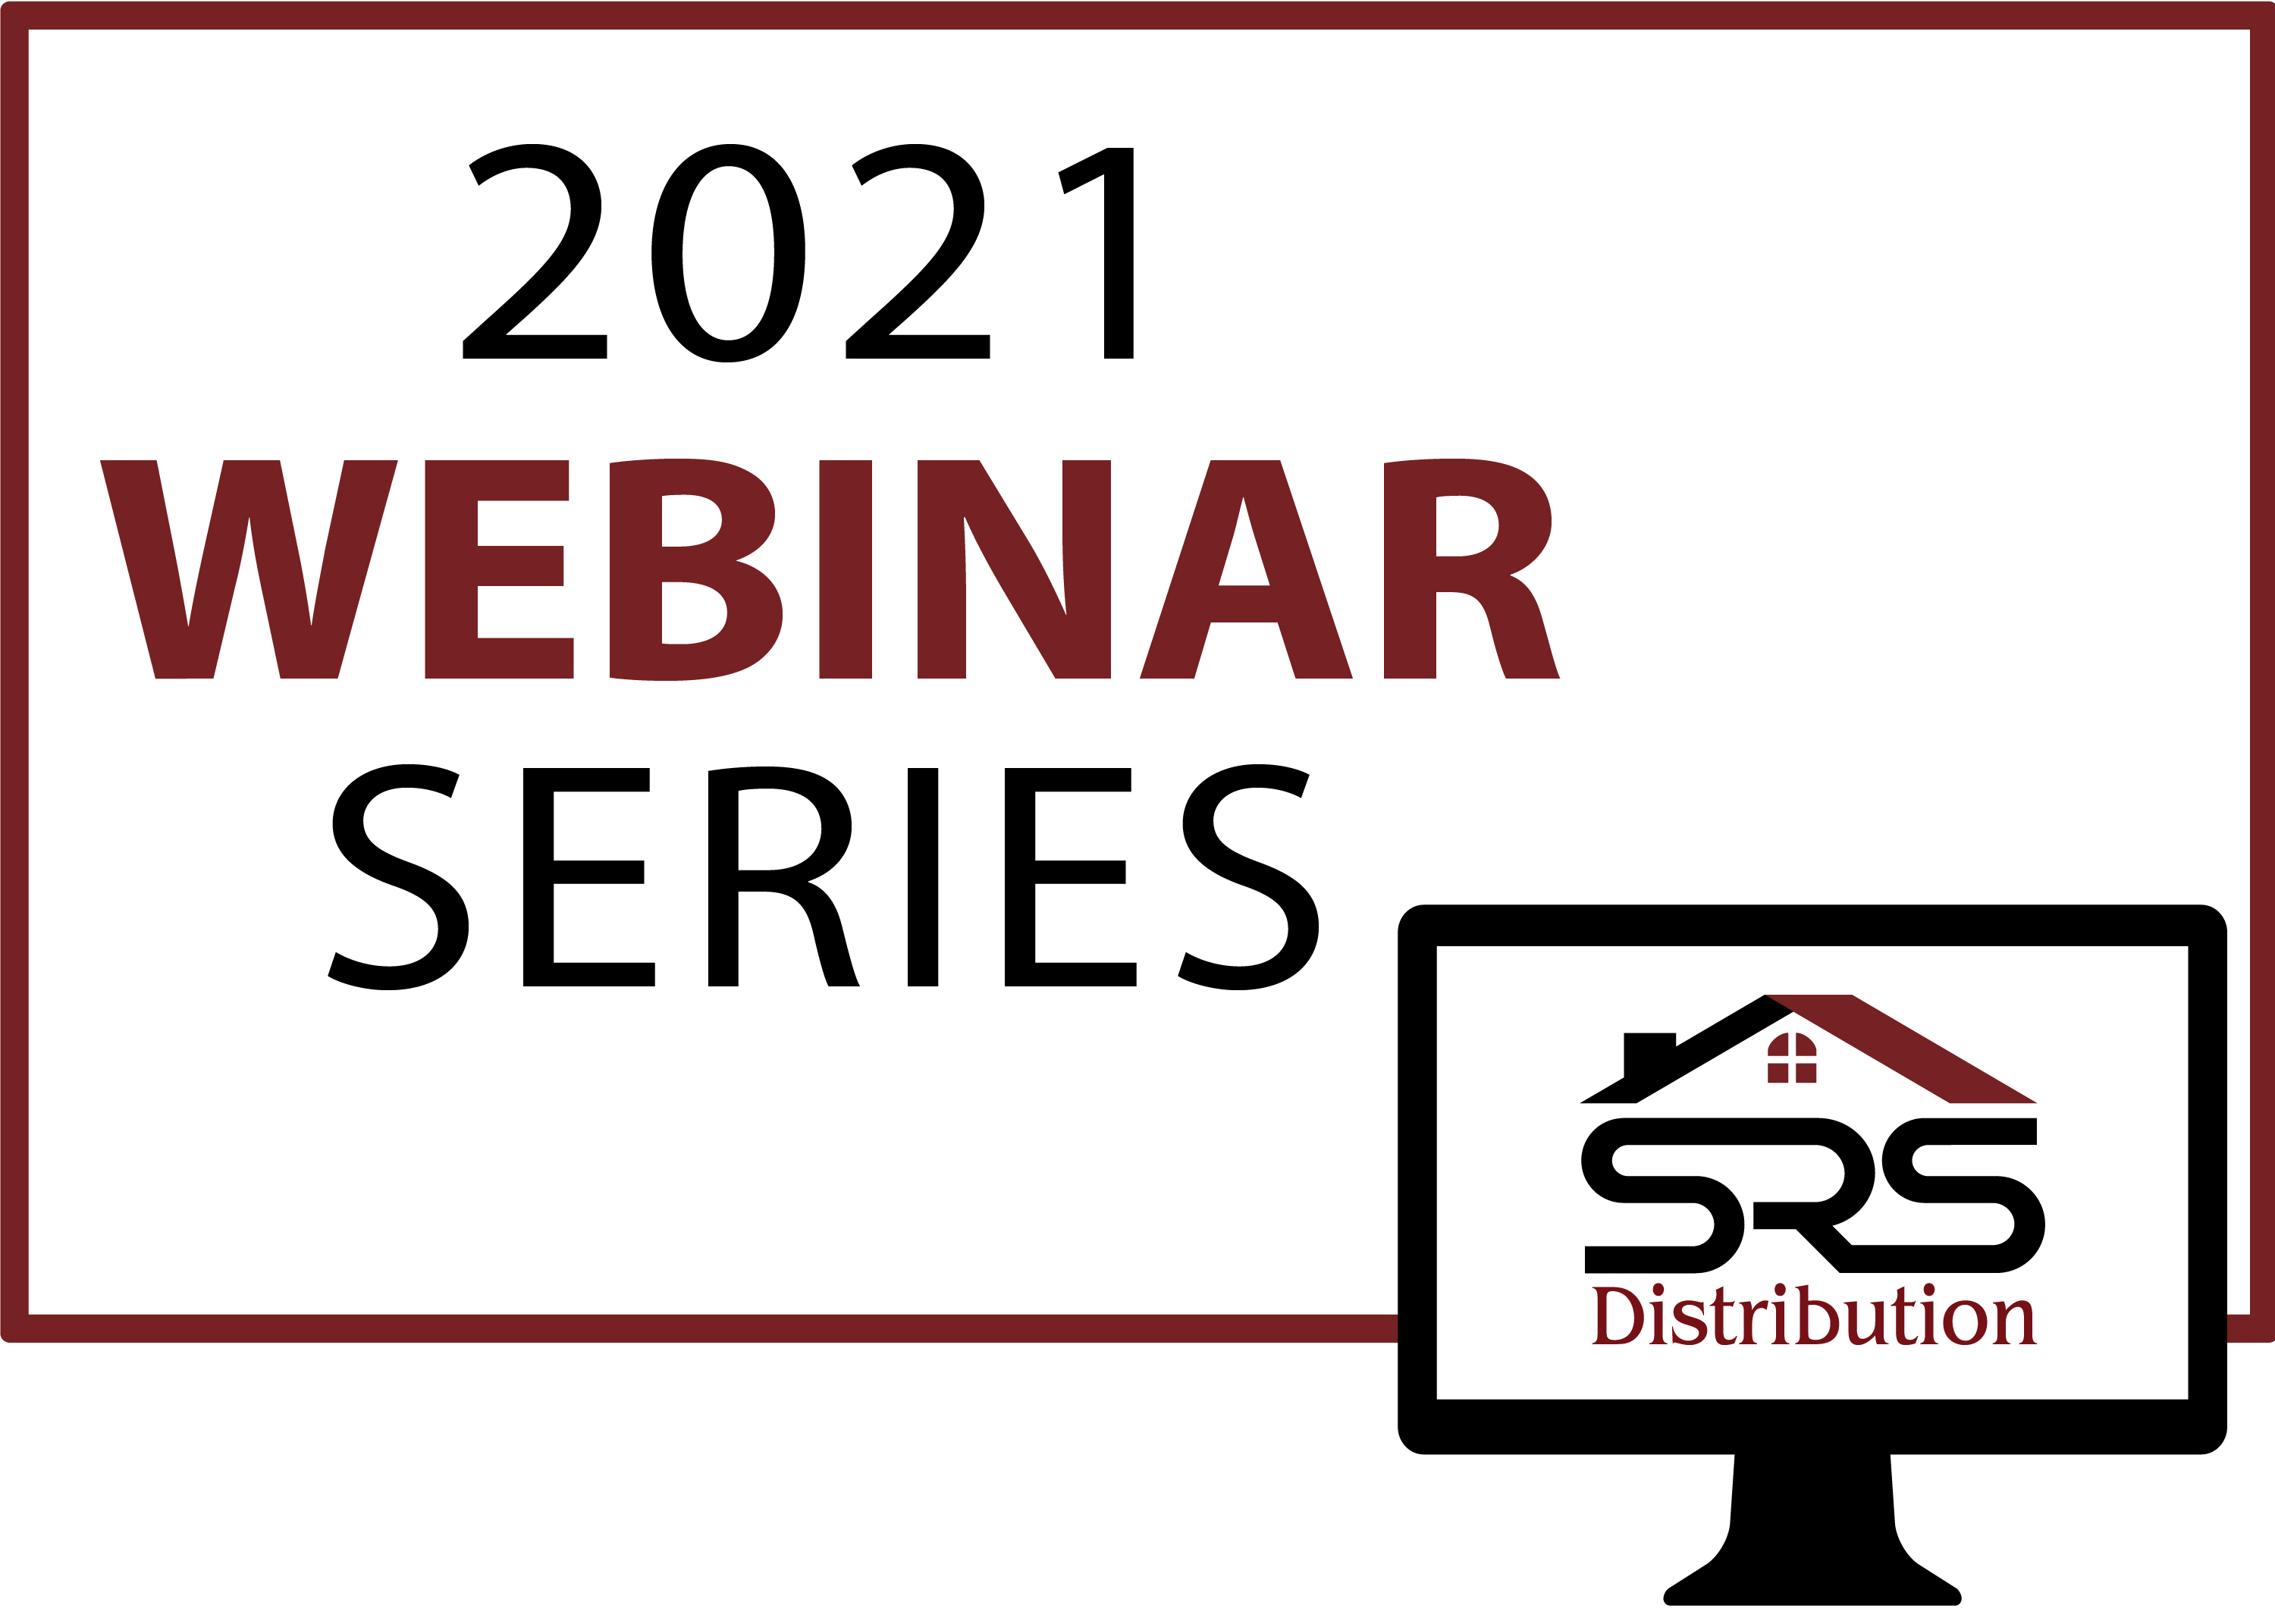 SRS Distribution - Navigation Ad - Webinar Series 2021